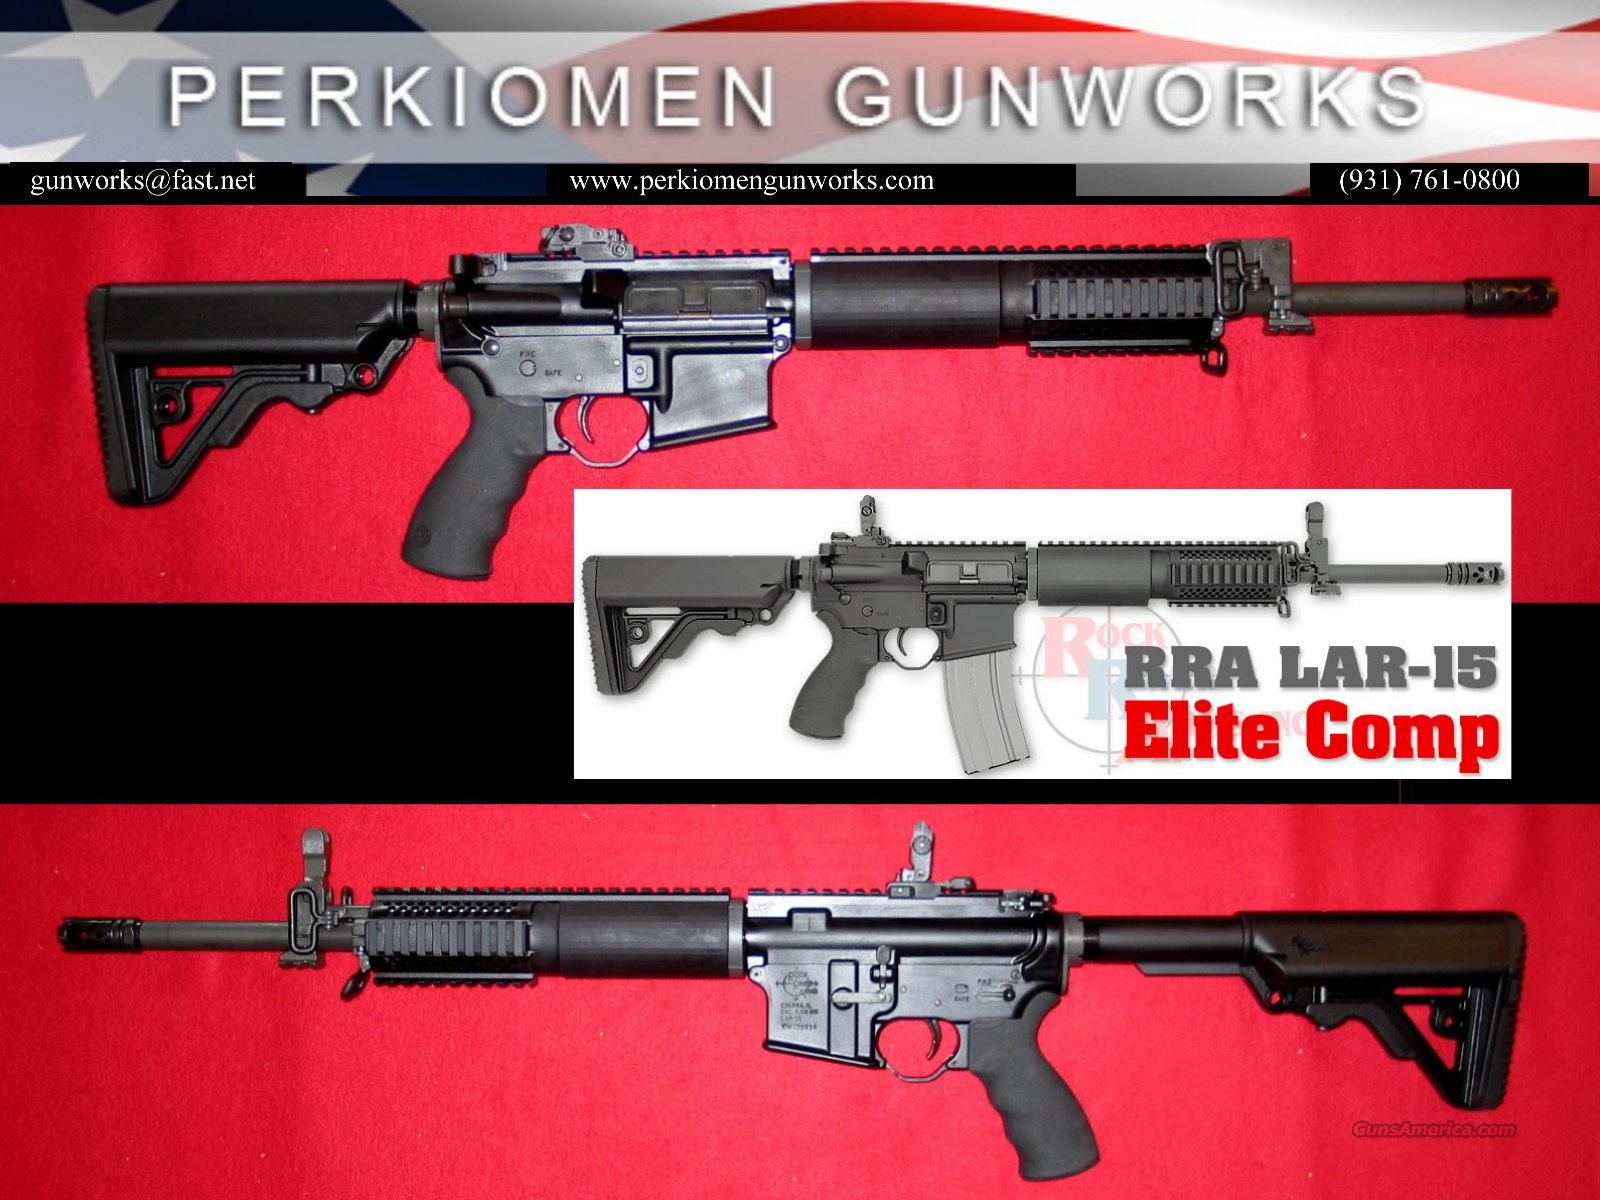 Elite Comp Mid-Length Carb. LAR-15 w/Chrome options - New in Box  Guns > Rifles > Rock River Arms Rifles